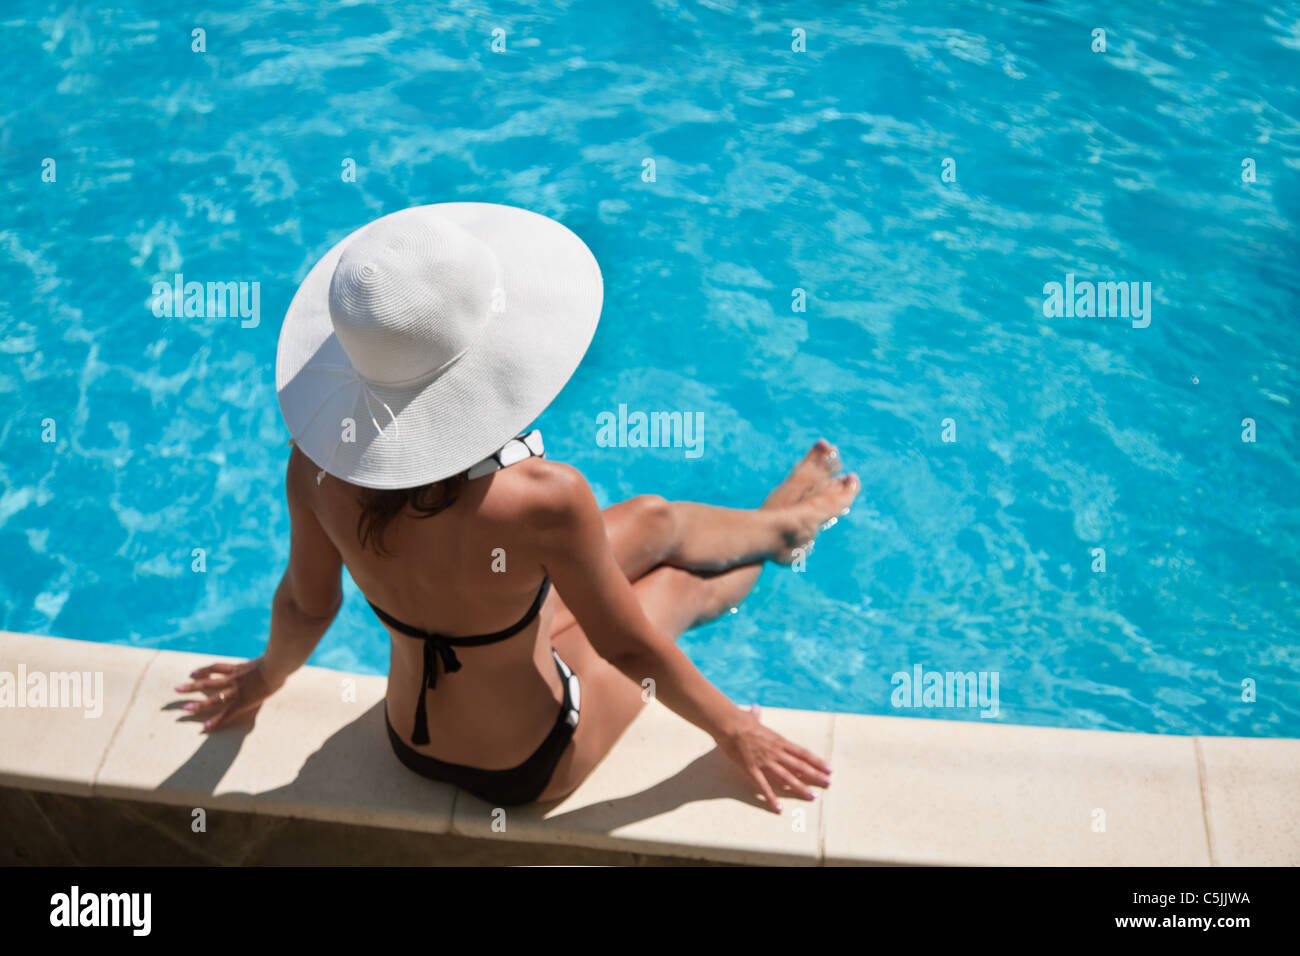 Young woman sitting on the ledge of the pool. - Stock Image